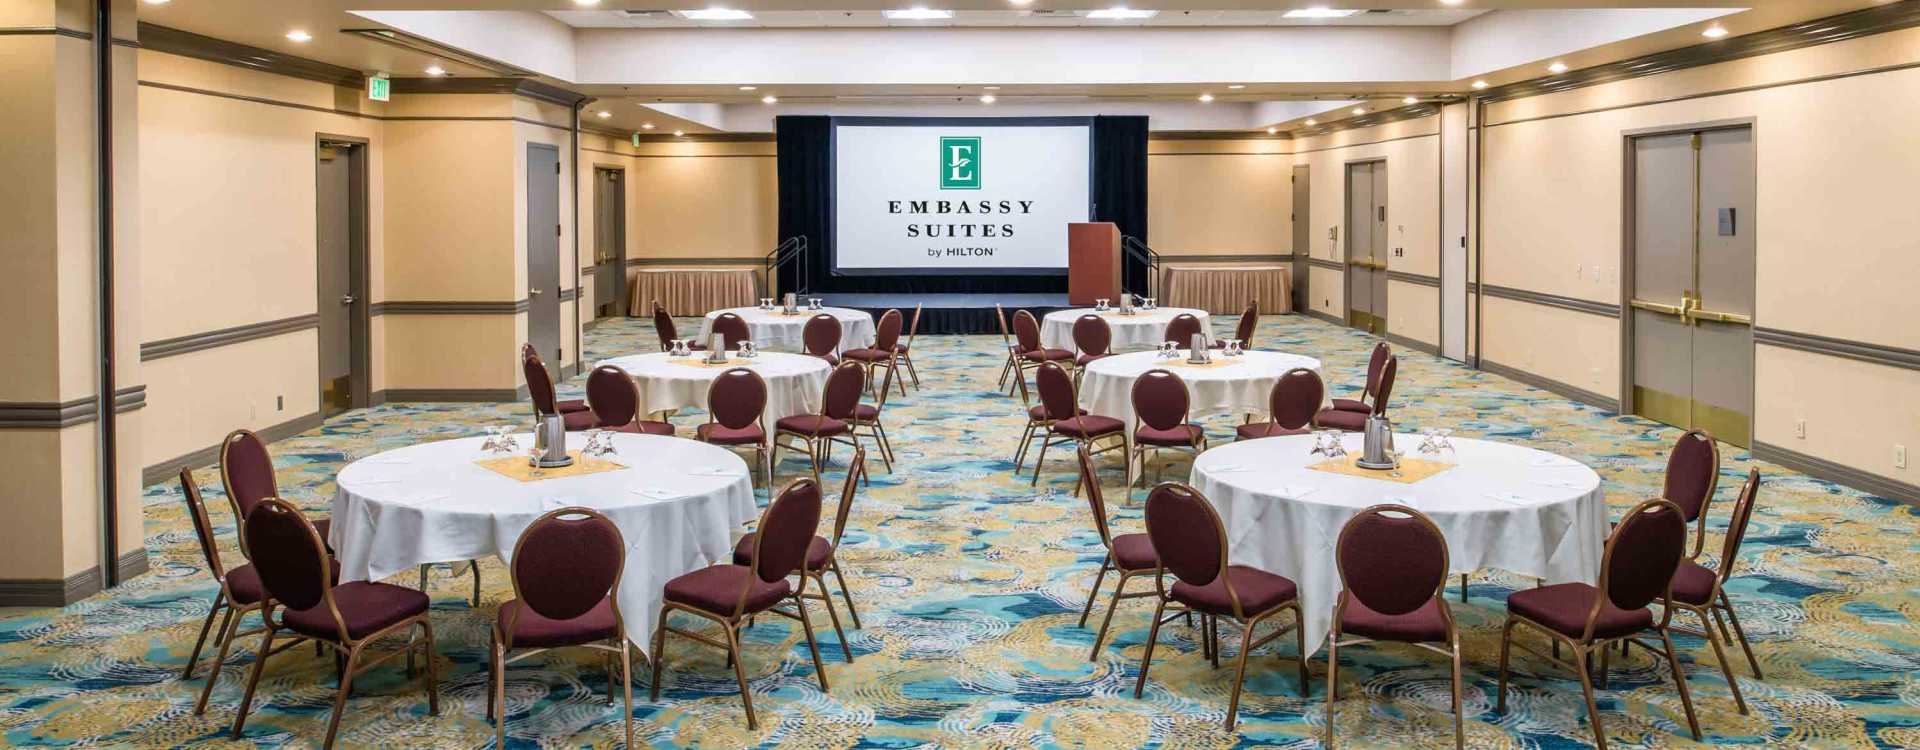 meeting-facility-Embassy_Suites_Seattle-Tacoma_International_Airport_Meeting_Facility-21.JPG